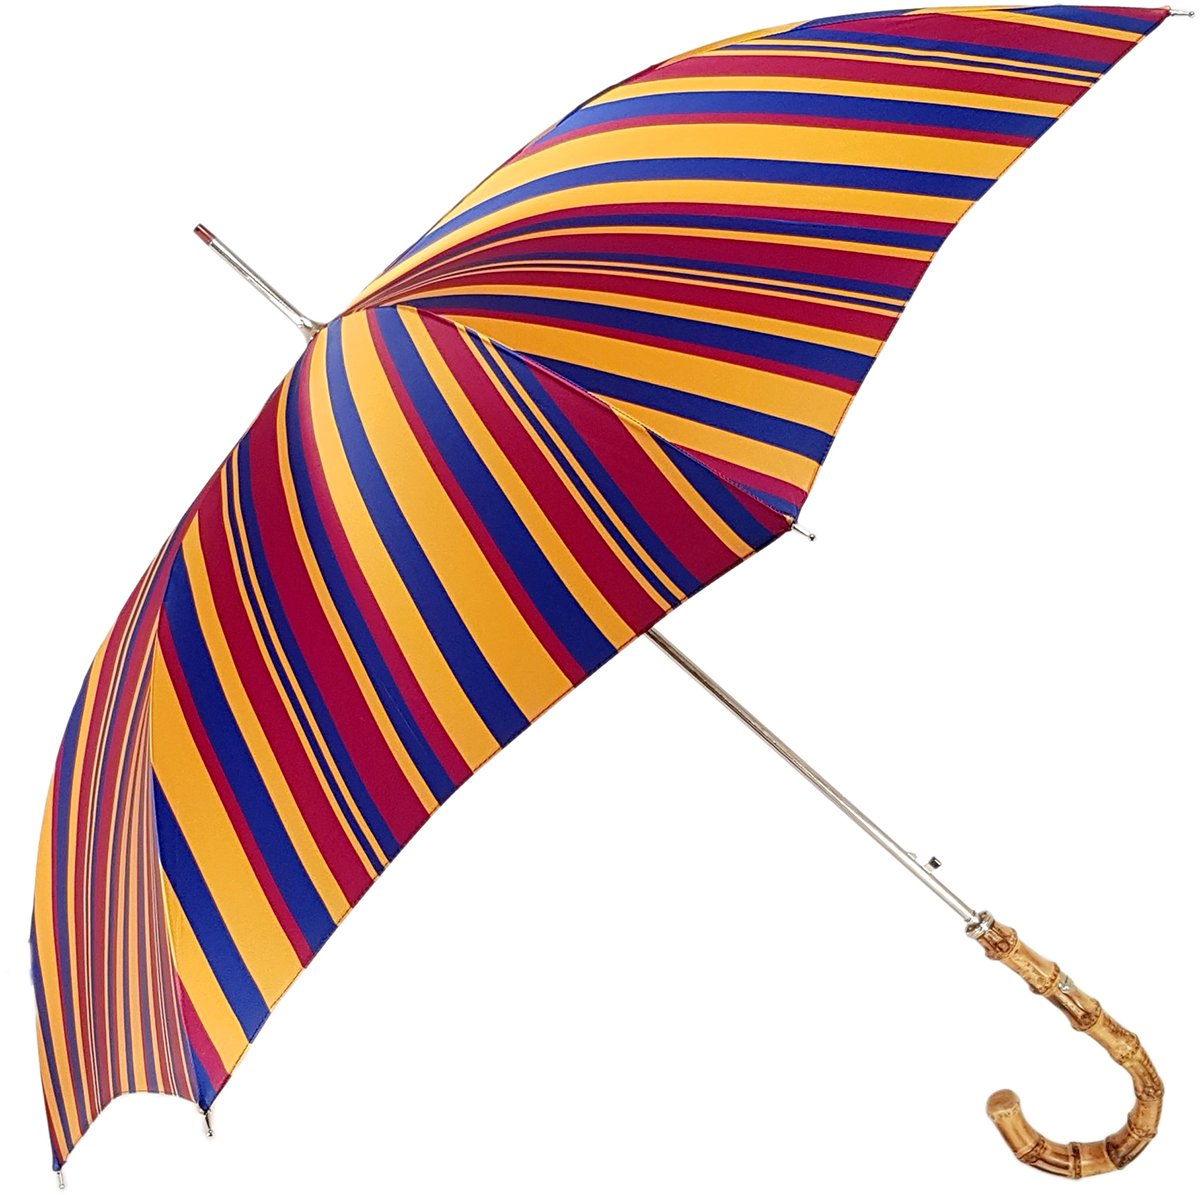 Gents Umbrella - Striped Design - By il Marchesato